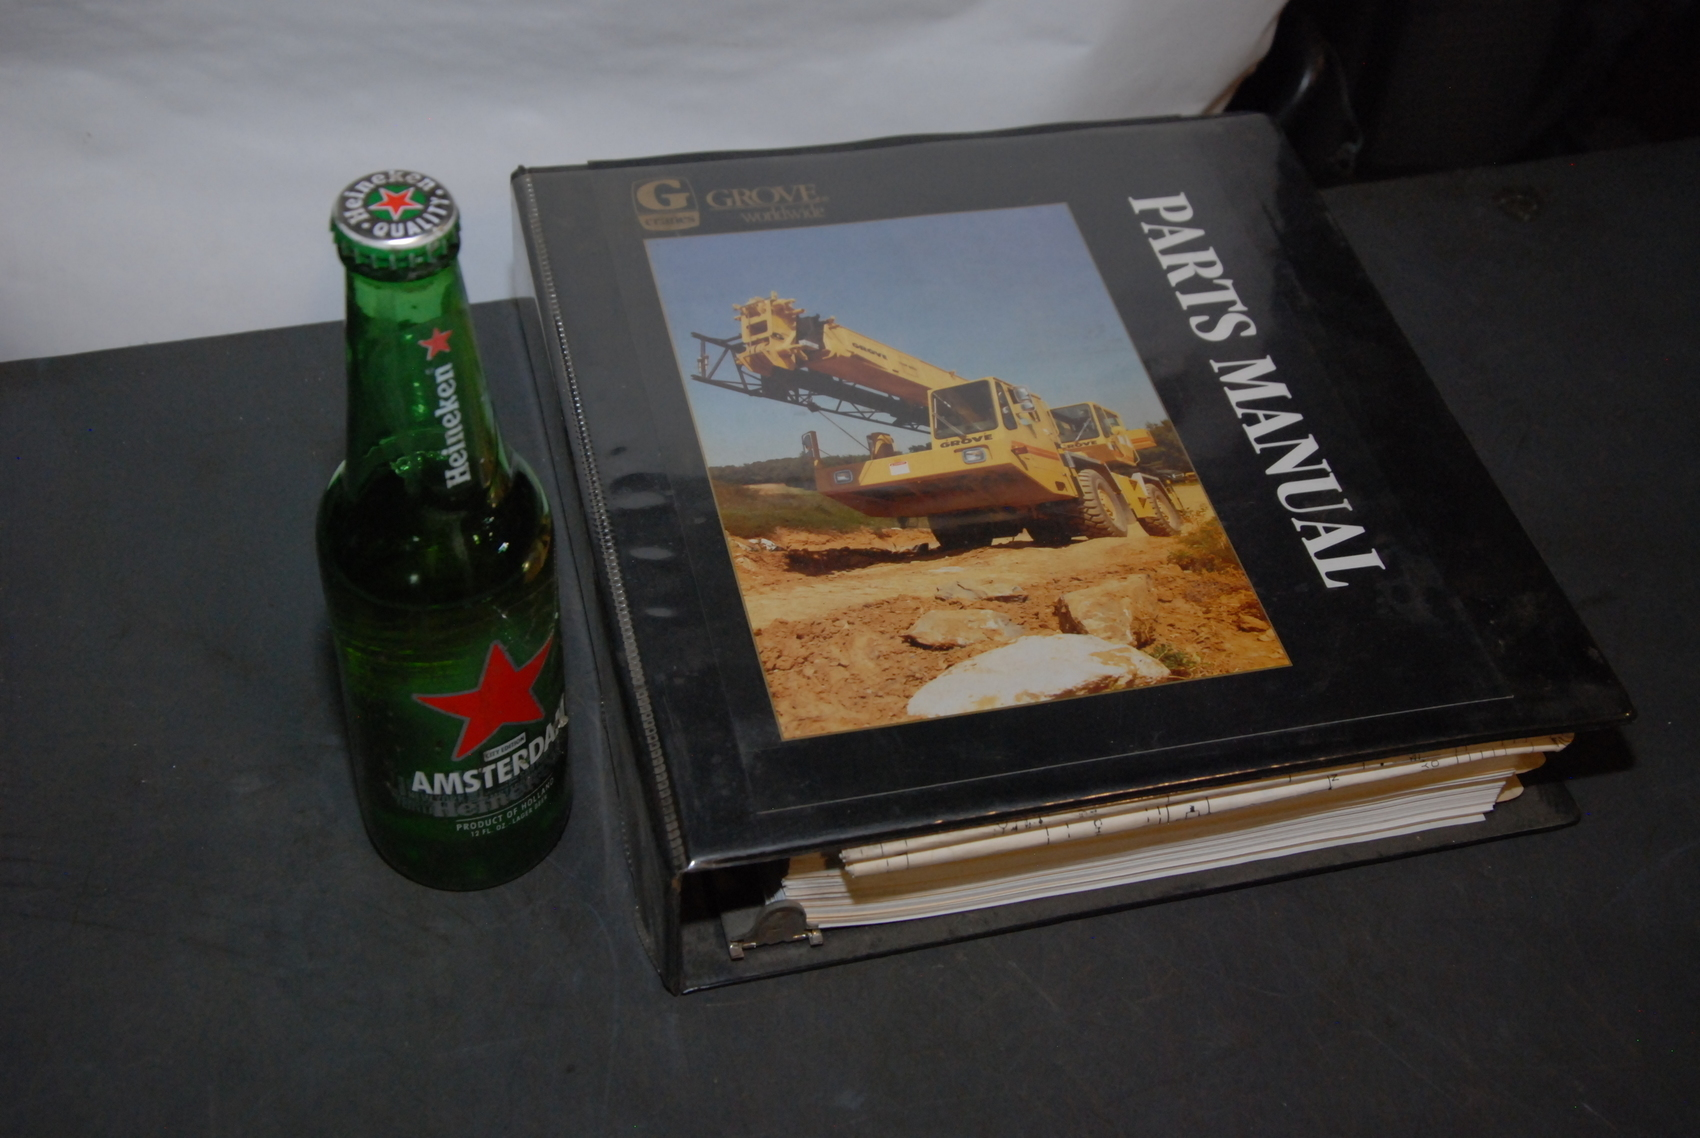 GROVE RT745 Crane parts manual with electric schematic nopl